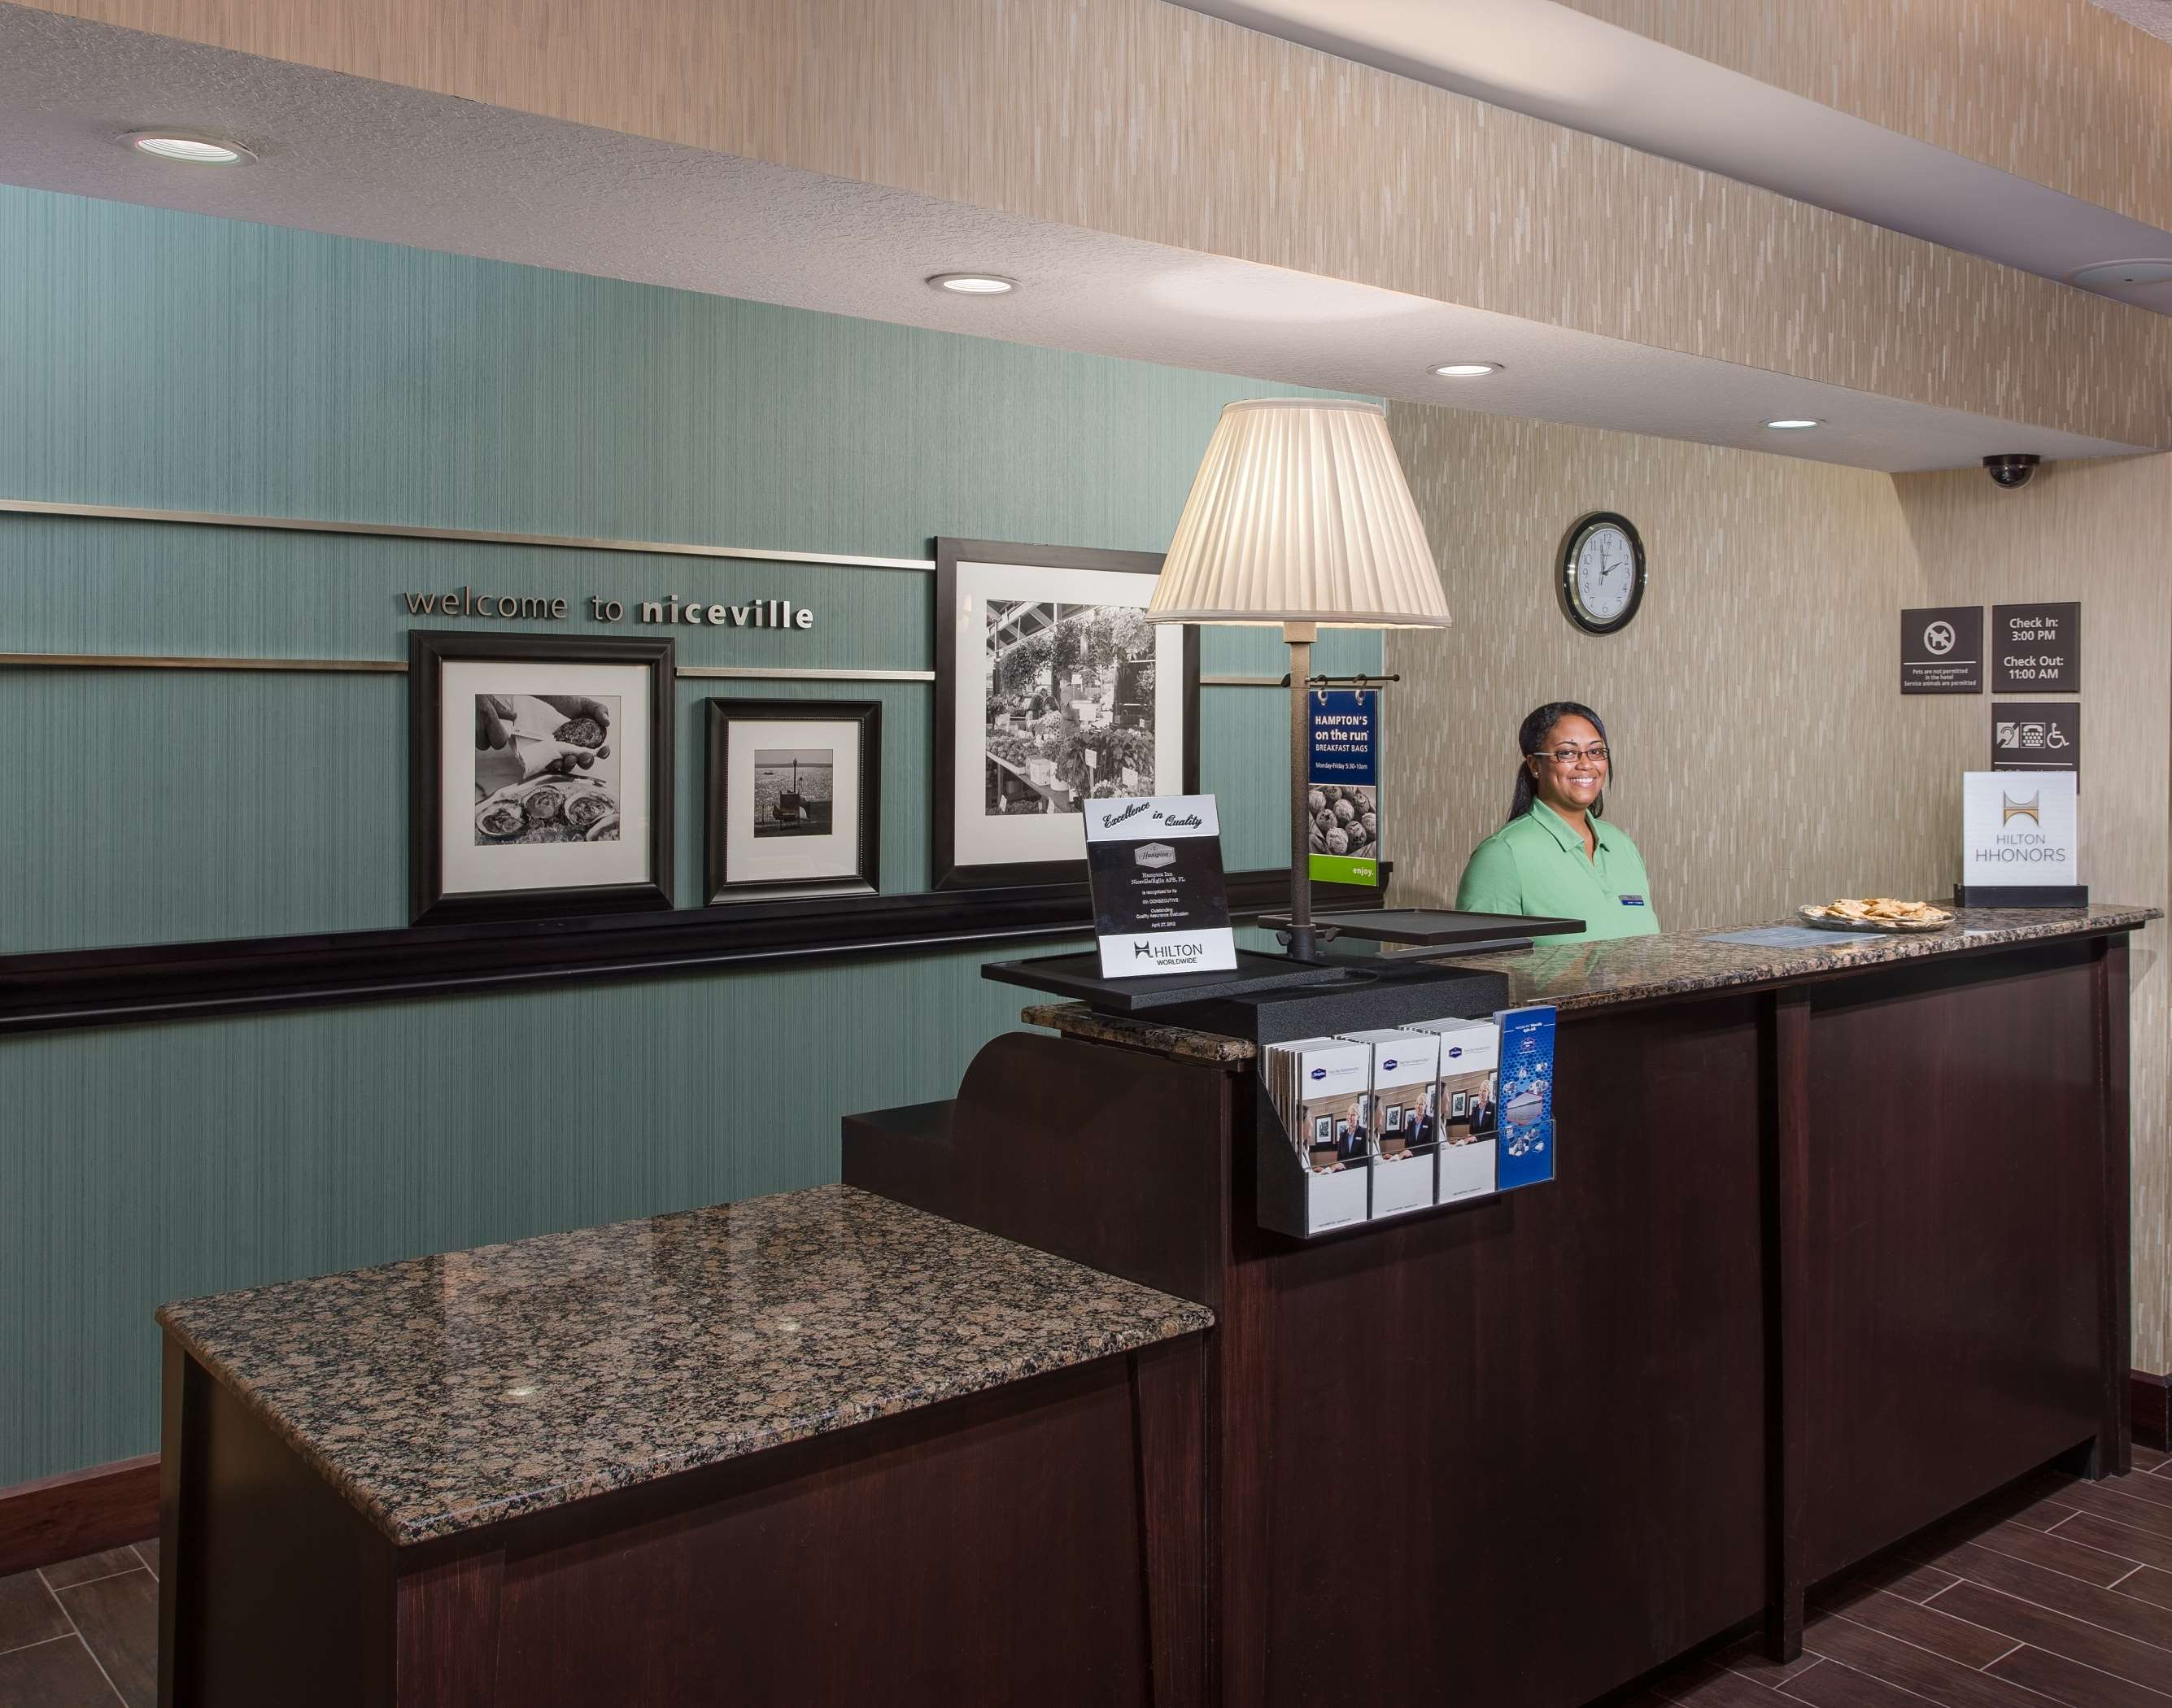 Hampton Inn Niceville-Eglin Air Force Base image 4